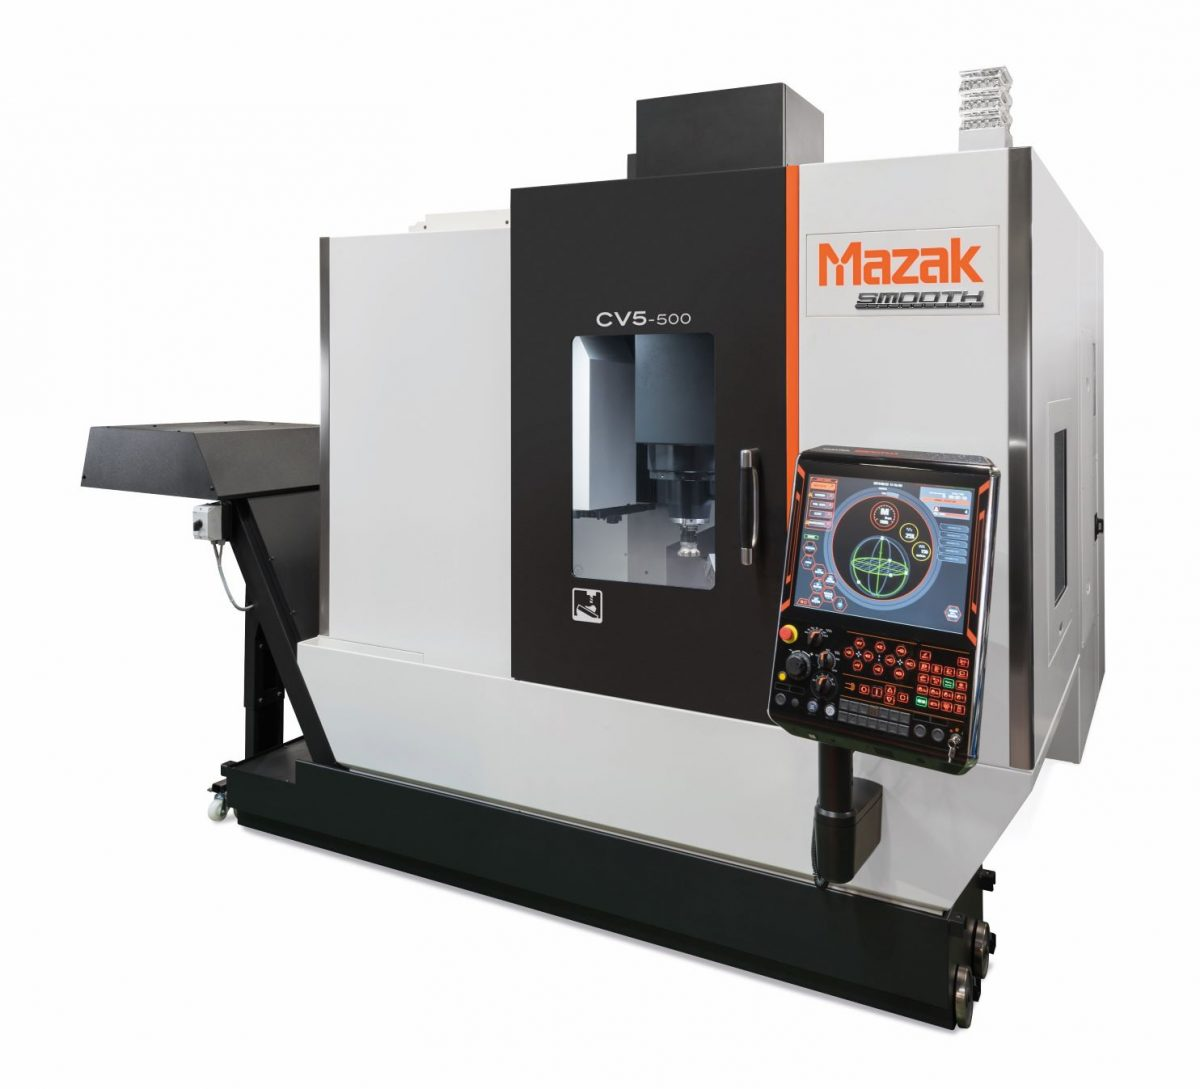 We are excited to announce we will be adding a new Mazak machine to our workshop. The Mazak CV5-500 has 5-axis machining capacity with a high performance 12,000 min-1 and 18.5 kW spindle. The new machine is due to be delivered early 2021 and we are already taking bookings for your requirements! To discuss please … Continue reading